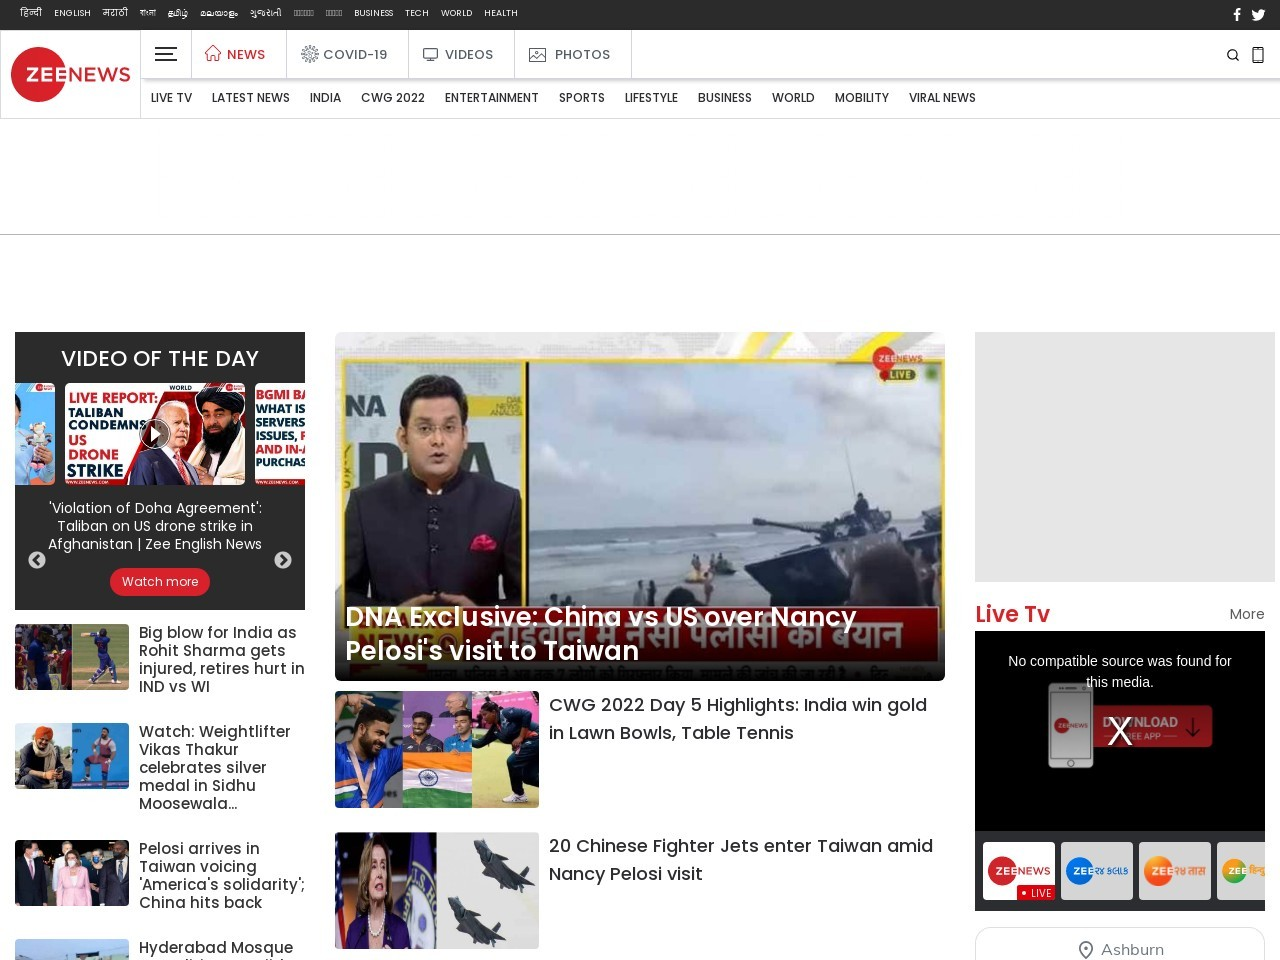 Rio 2016: Swimming legend Michael Phelps bids for astonishing 20th Olympic gold